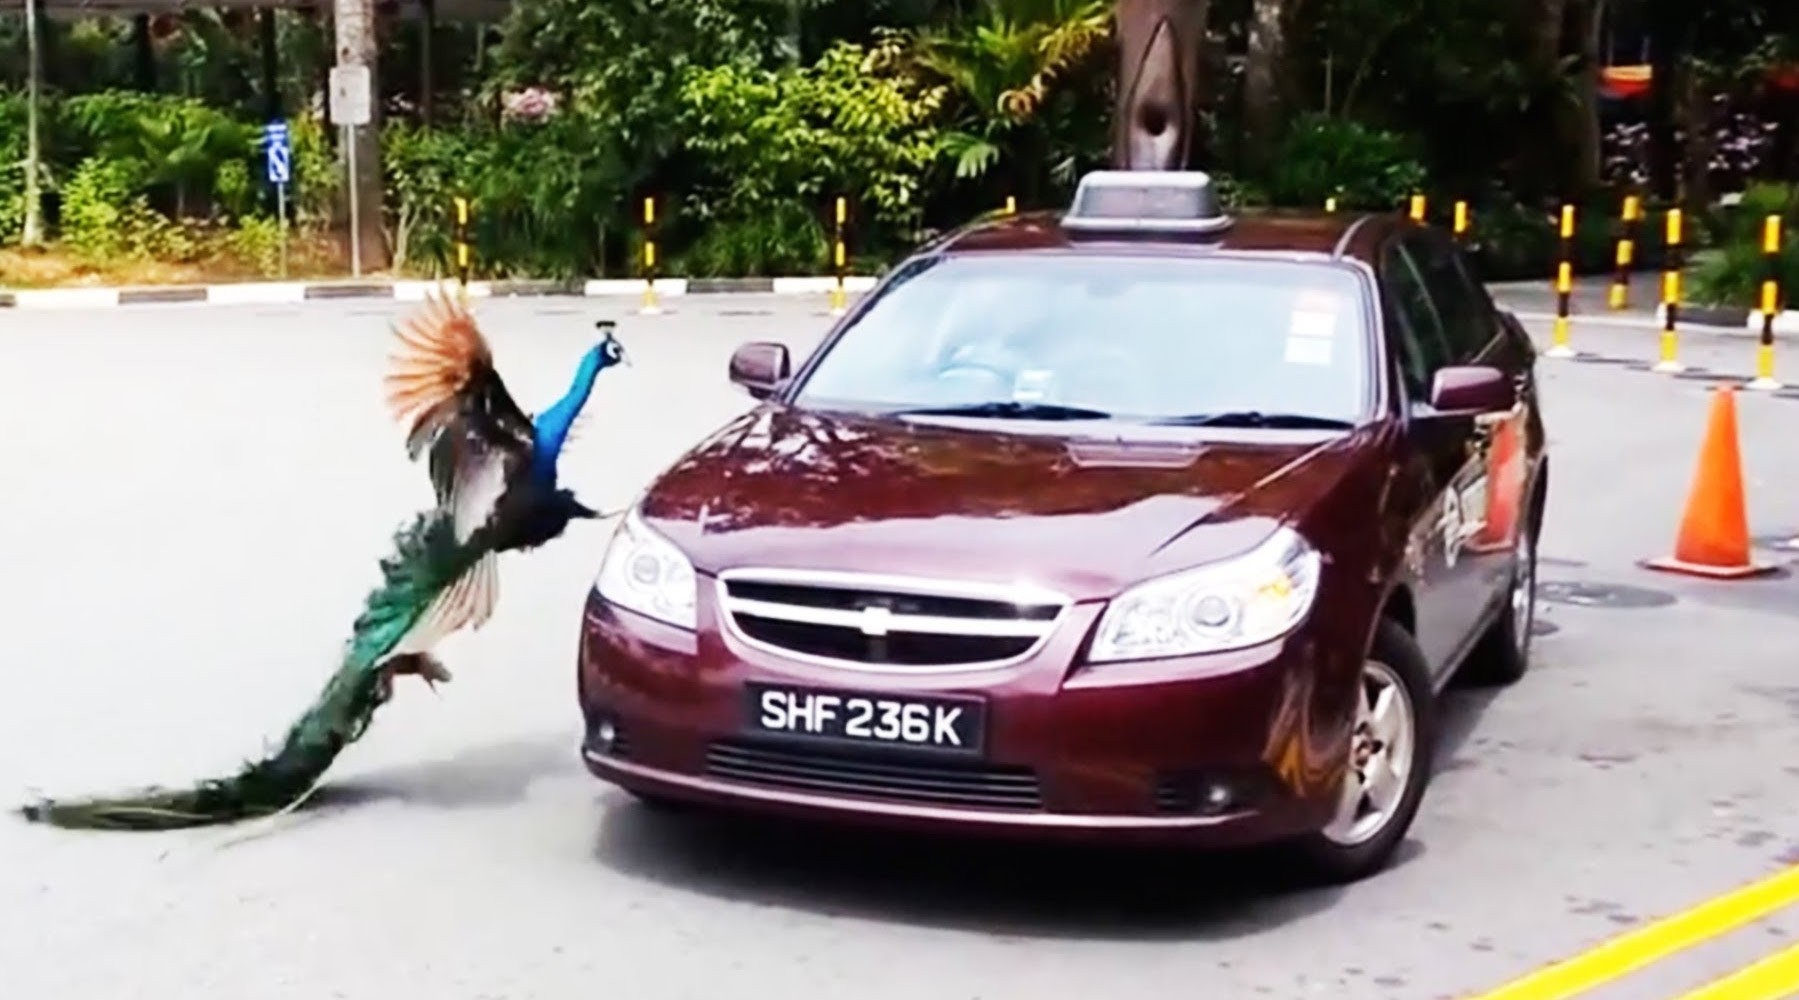 Call The Flying Squad! The Angry Birds Causing Havoc For Motorists Around The World